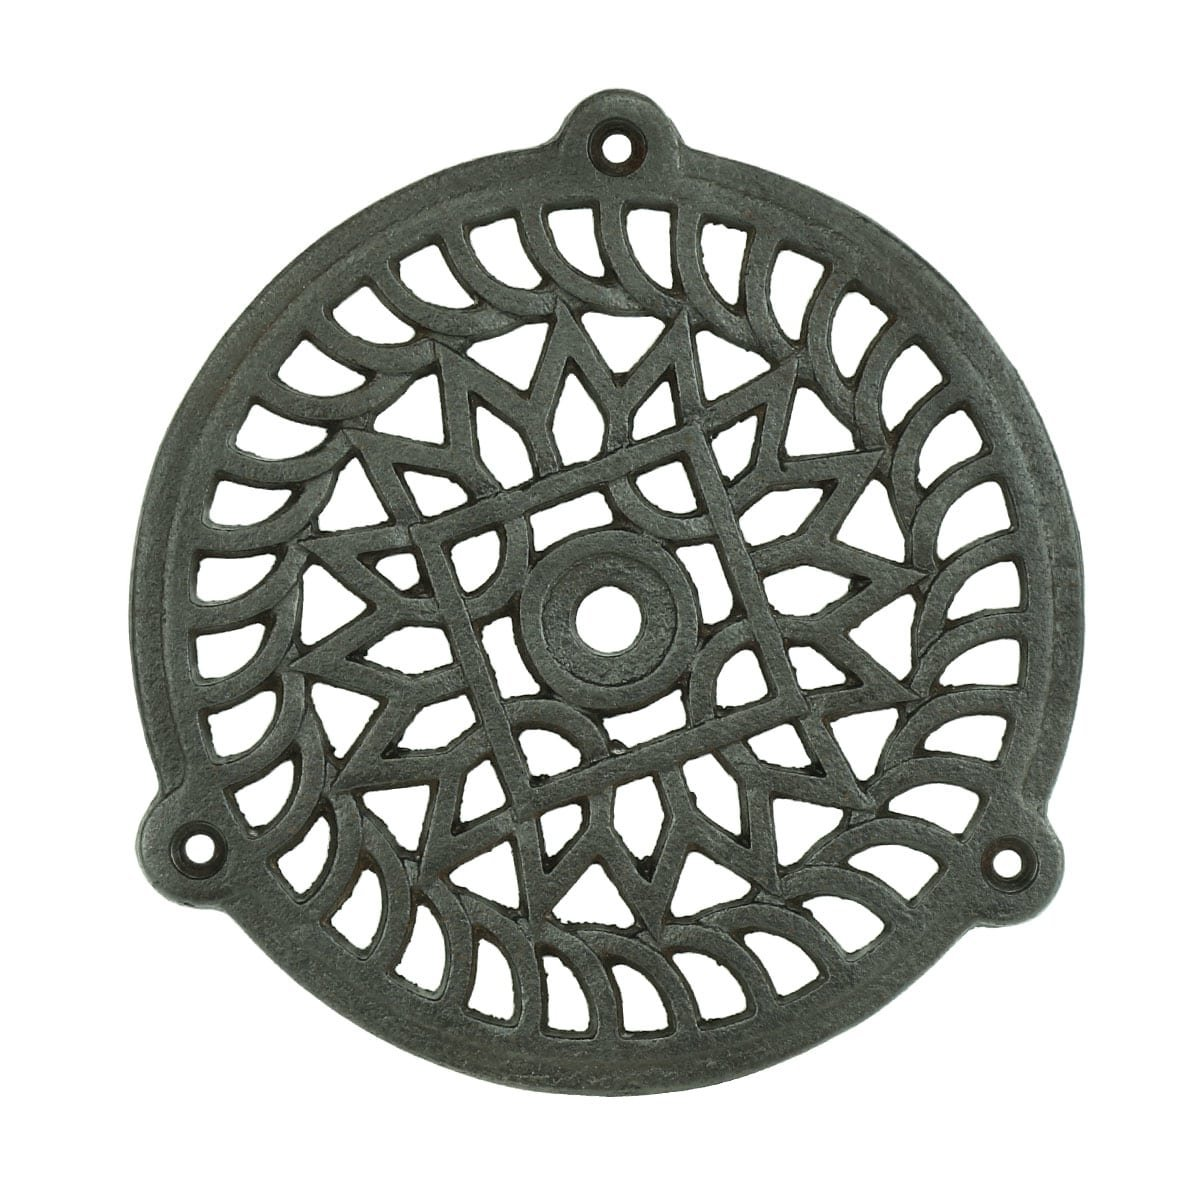 Hardware Grilles & Grates Wall grate antique round iron Brüel - Ø 160 mm